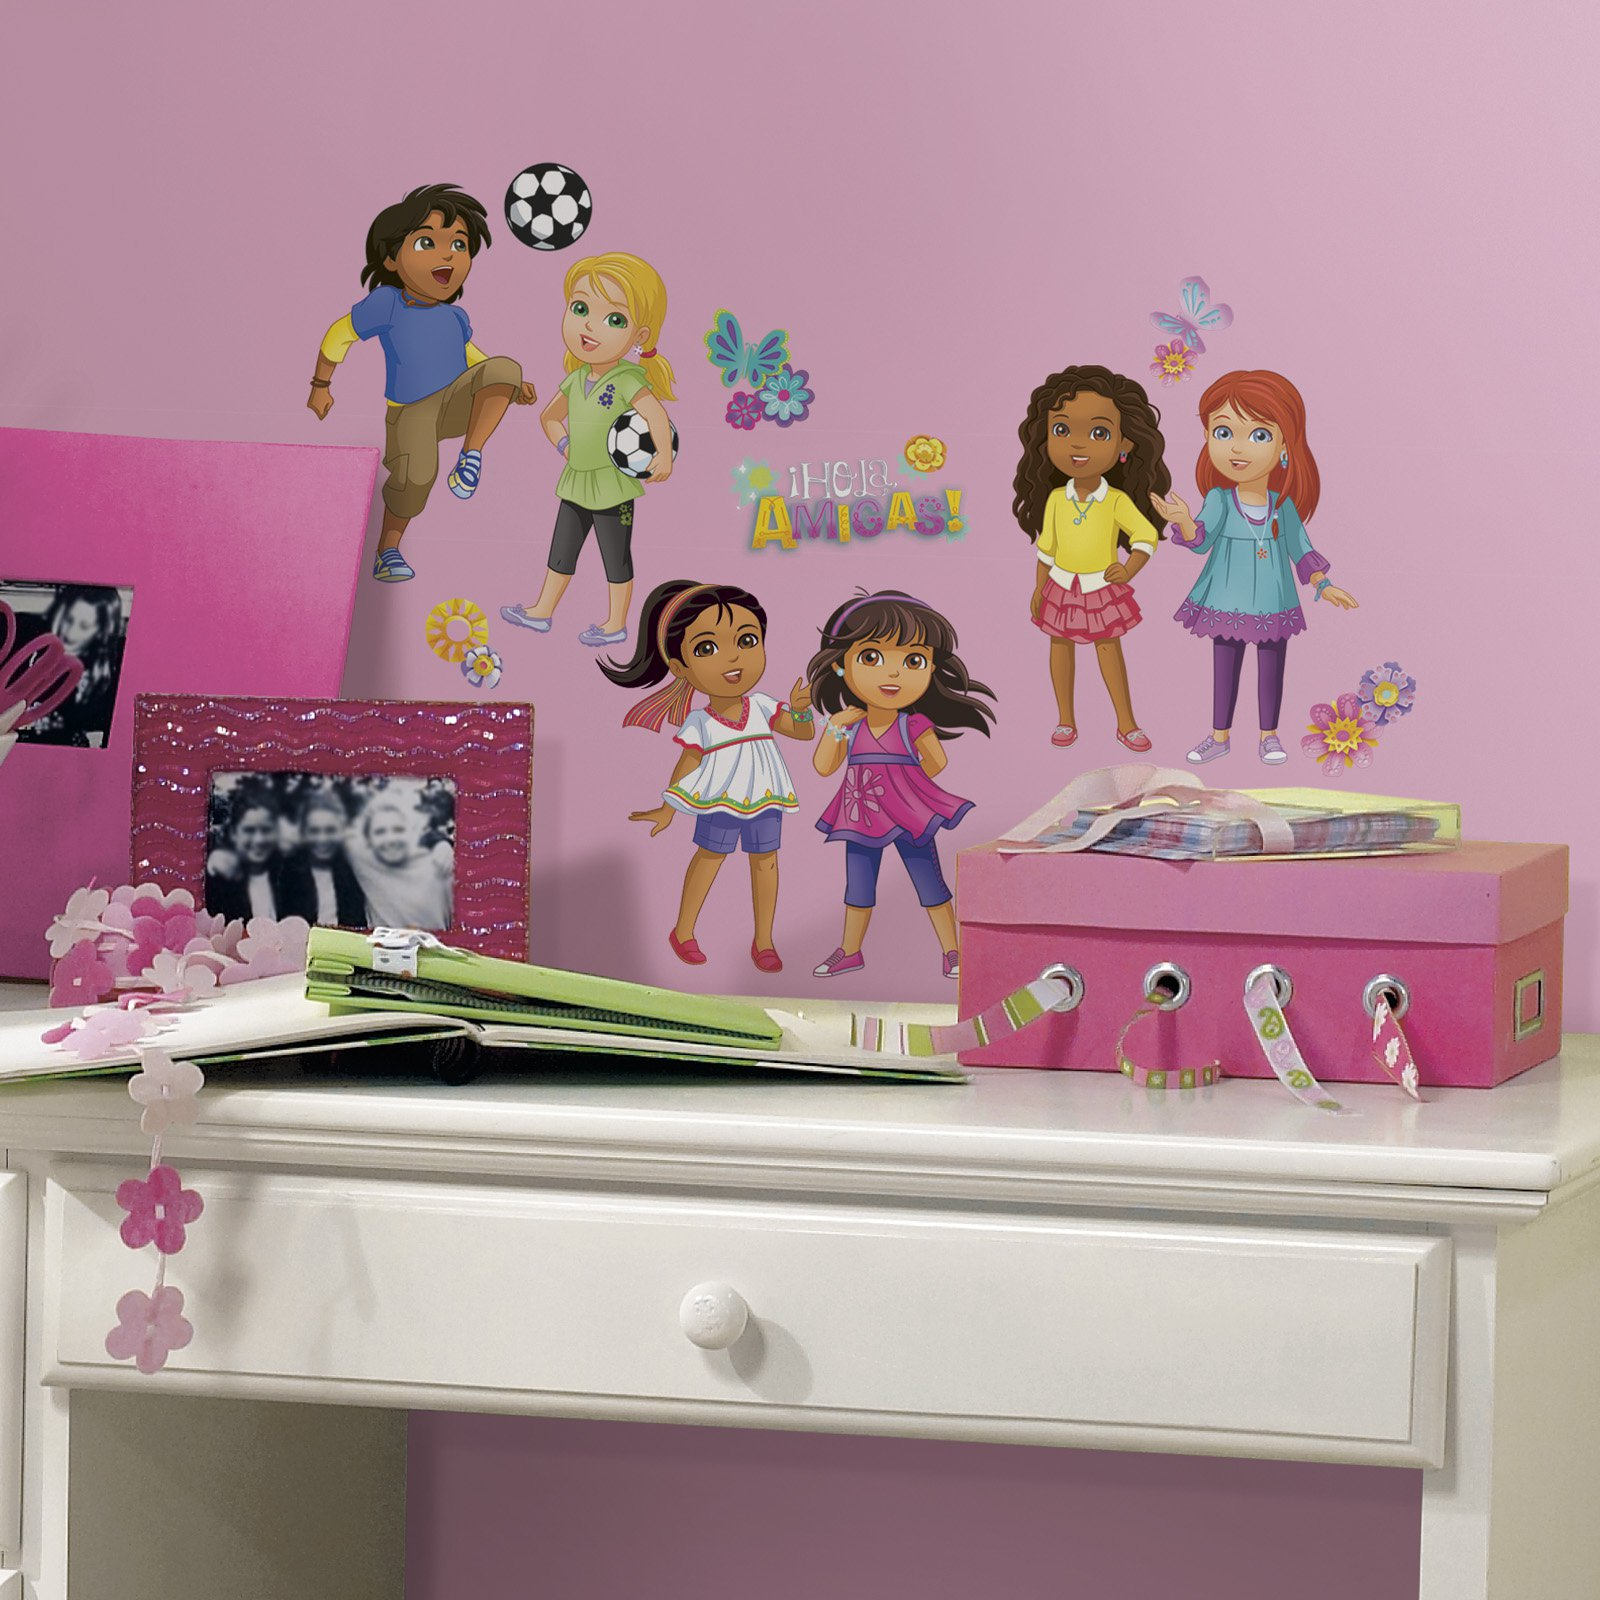 Dora and Friends Peel and Stick Wall Decals